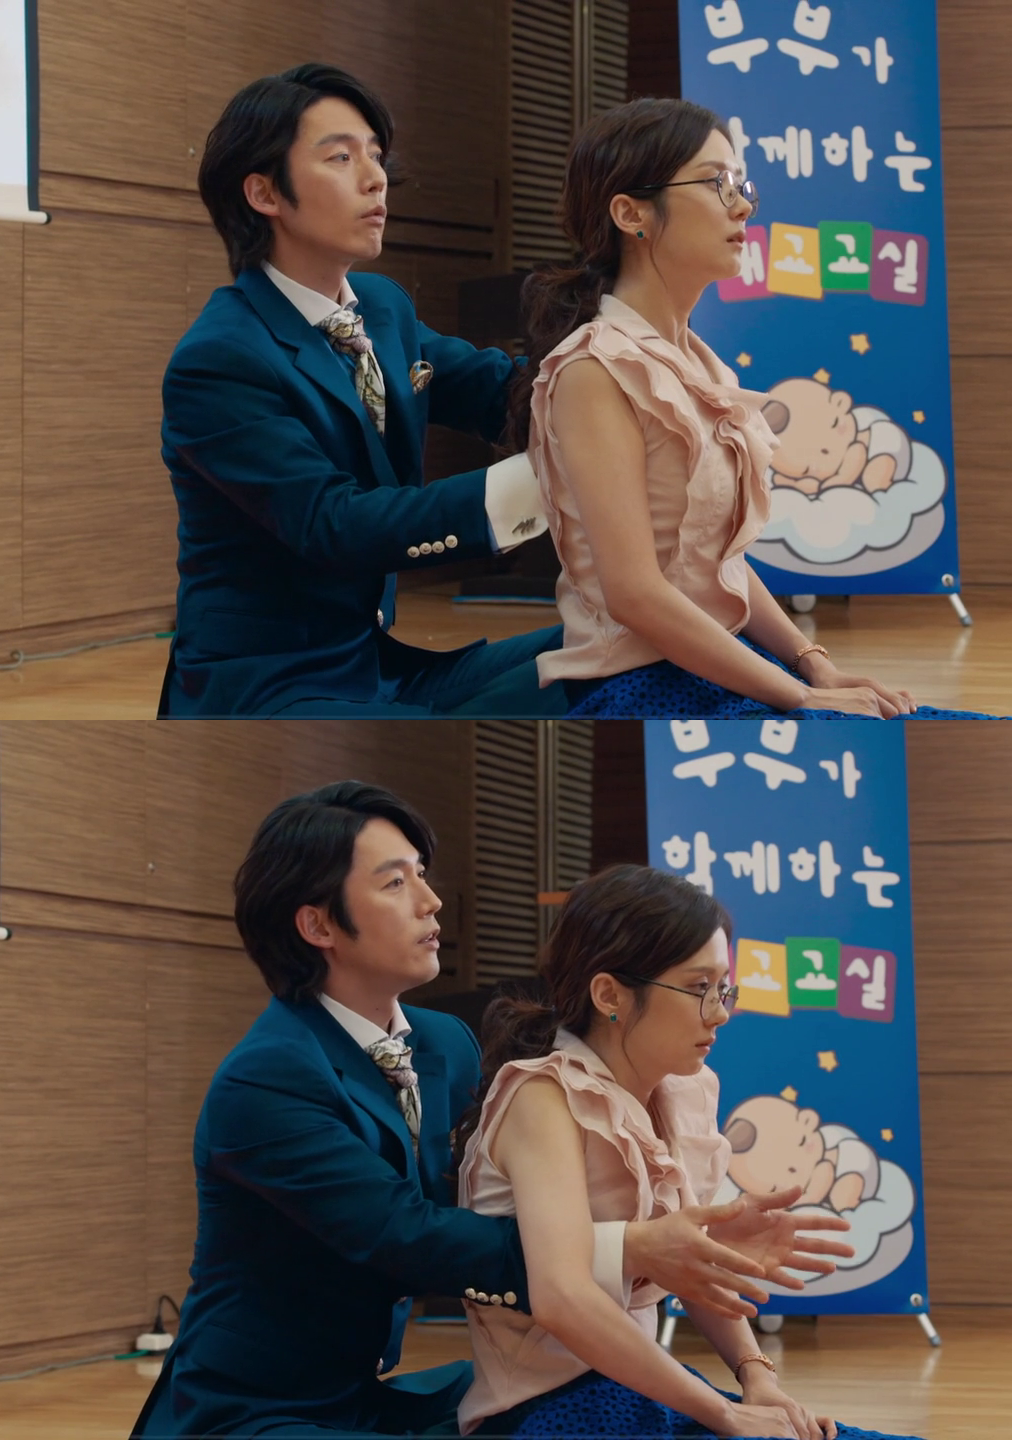 MBC Fated to Love You - Lee Geon (Jang Hyuk) hilariously follows directions on how to take care of his pregnant wife, Kim Mi Young (Jang Nara).